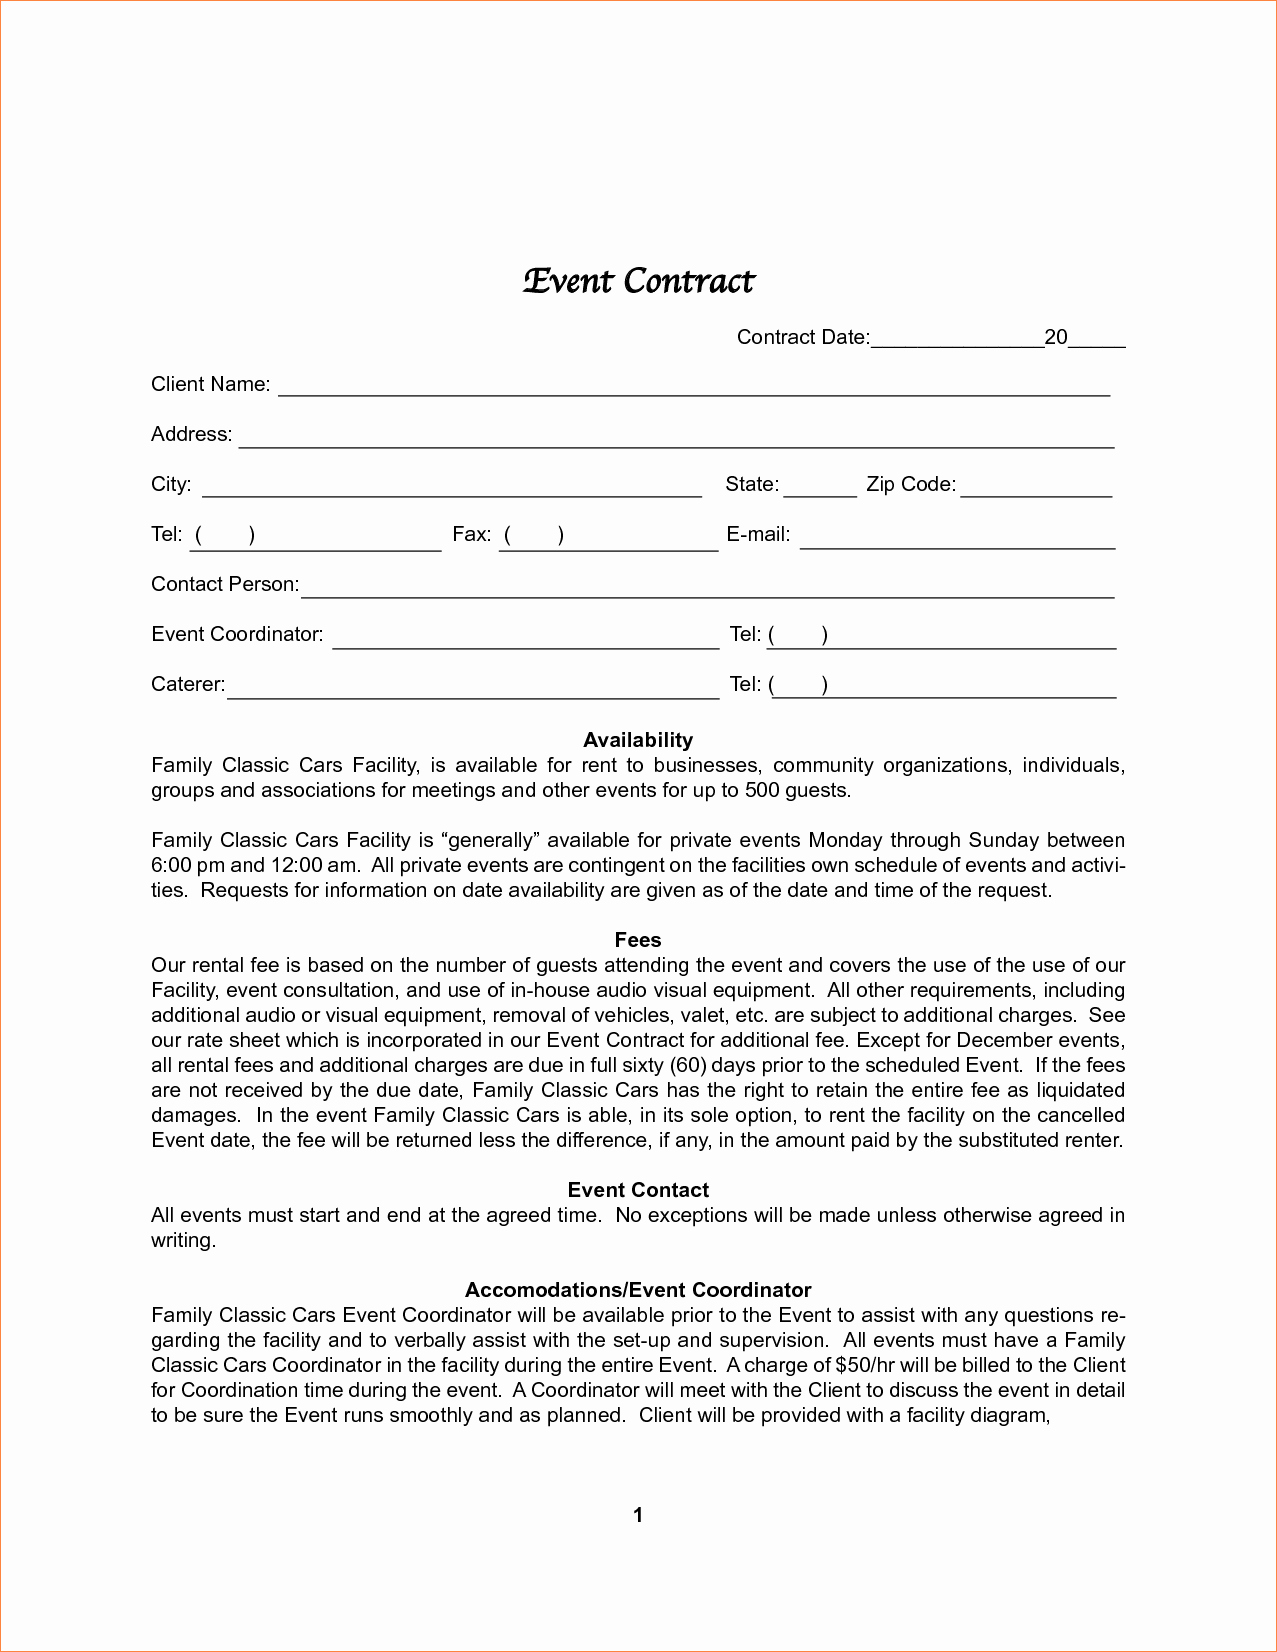 Event Planner Contract Template New 011 Plan Template event Contract Sample Contracts for